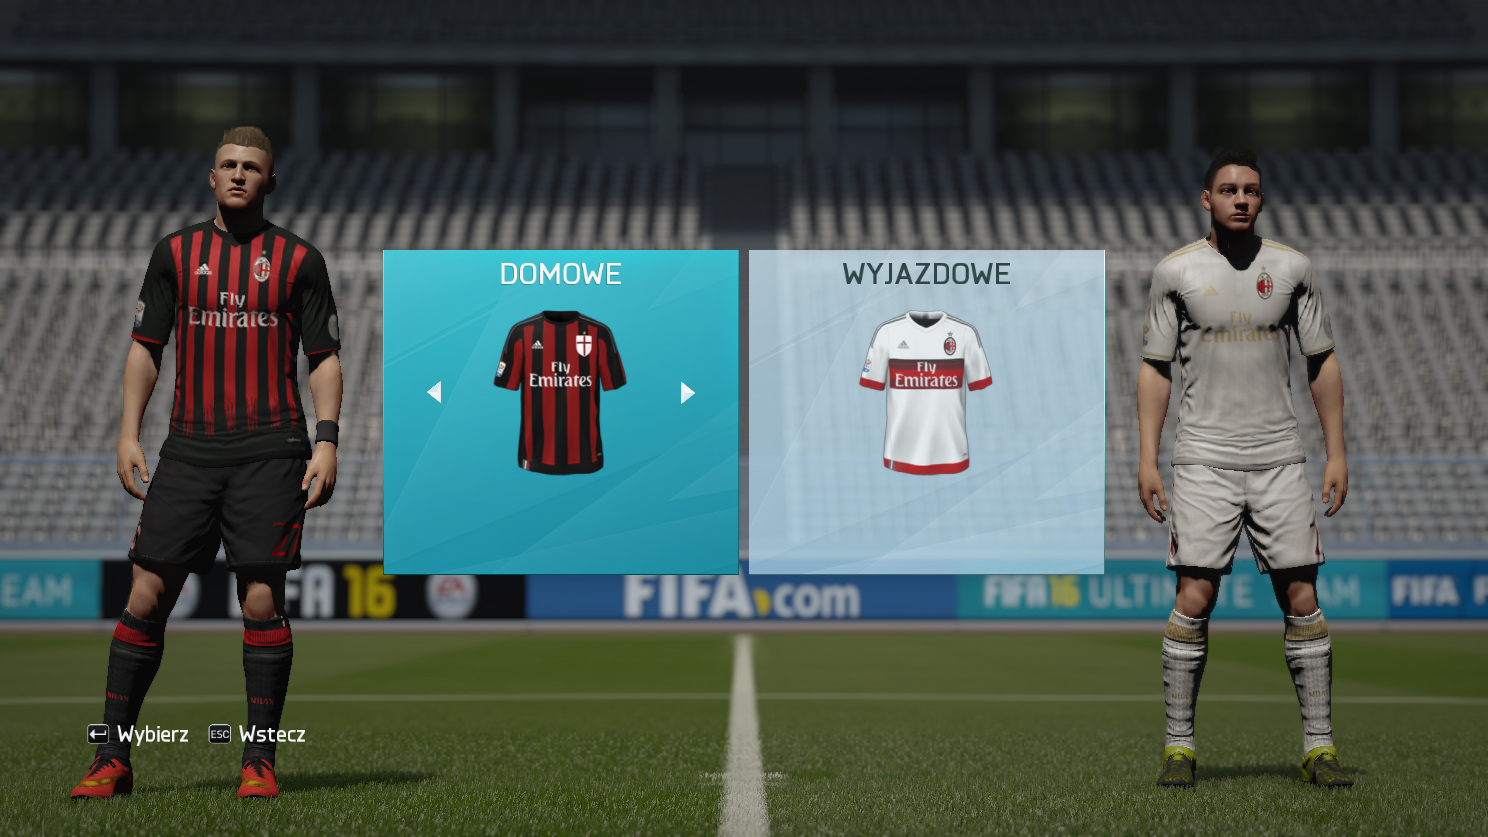 milan bisevac fifa 16 pack - photo#4